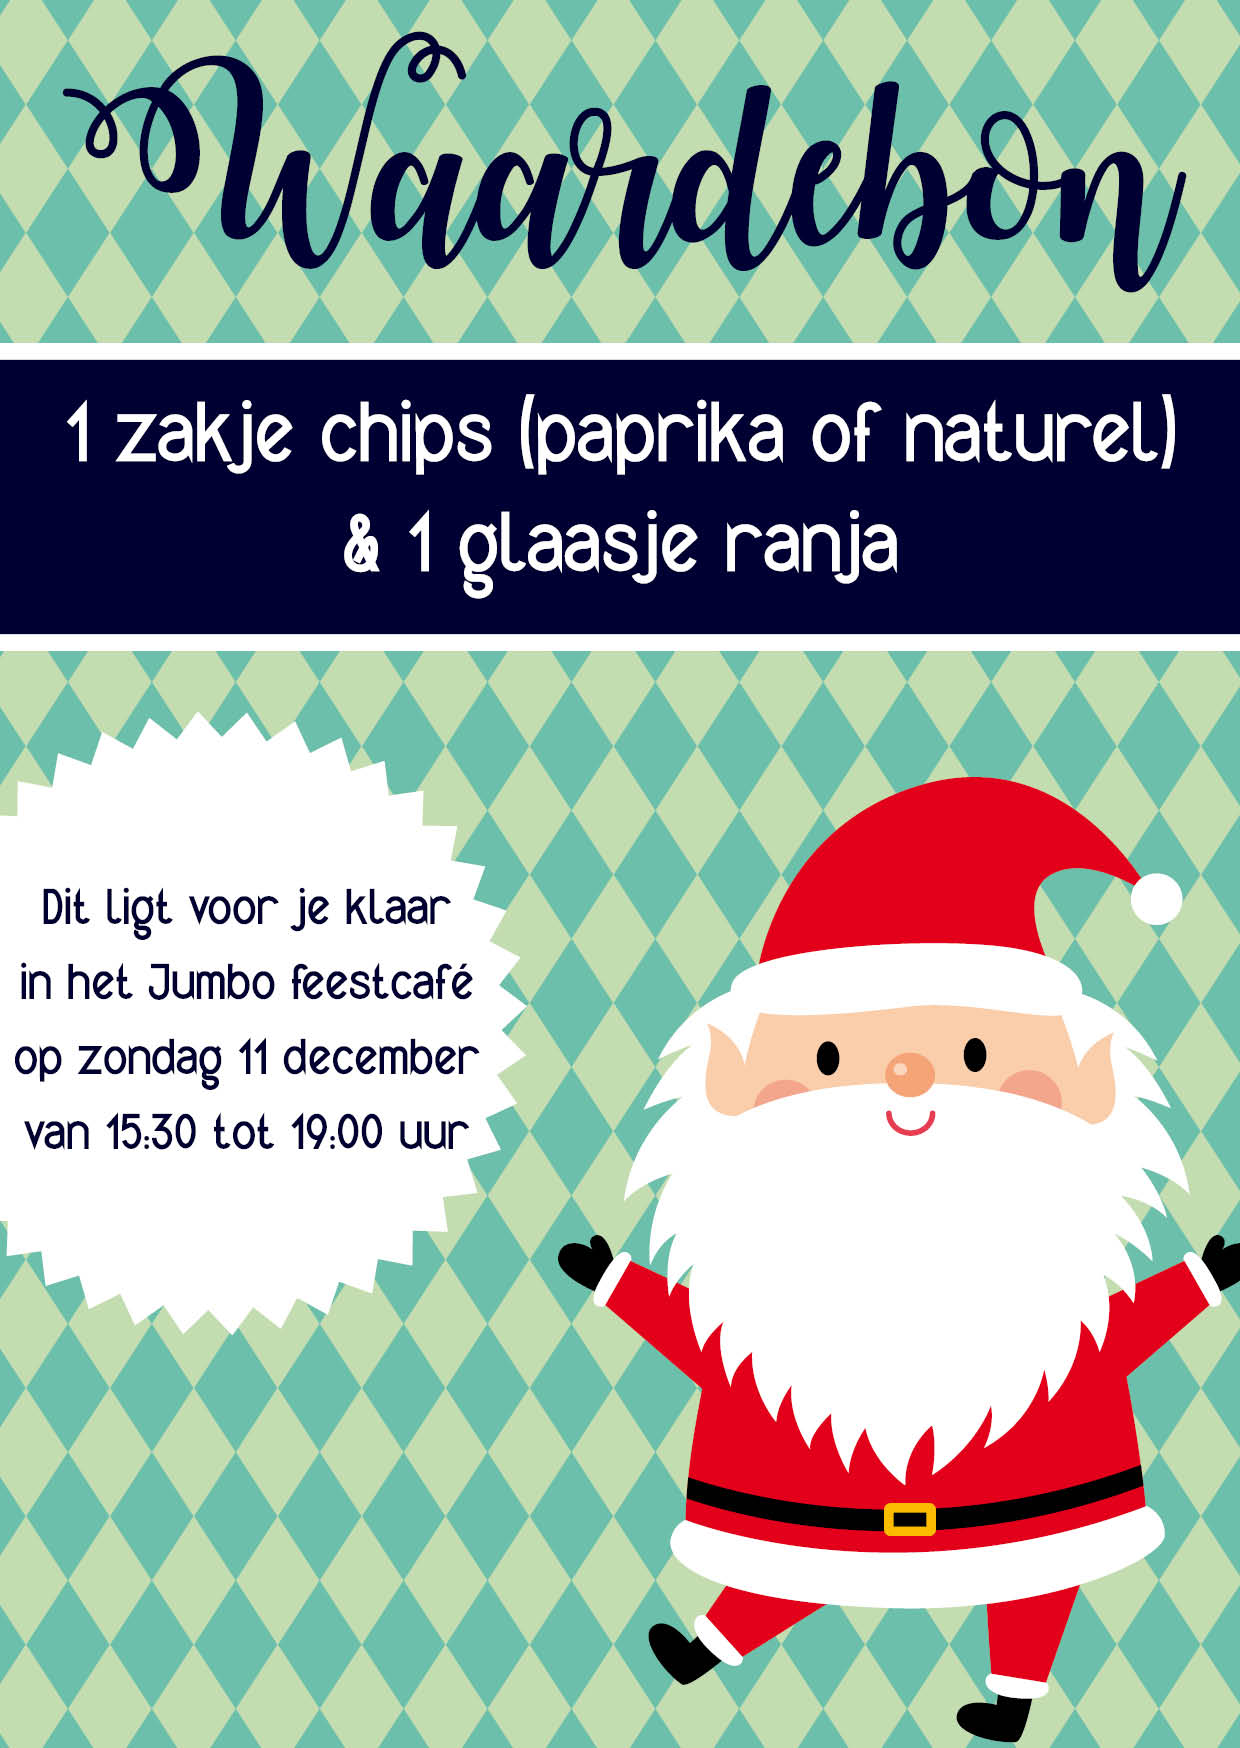 logo, Kaartje BYzonder, Ortus, Bladel, Reusel, design, marketing, winterfeesten, reusel